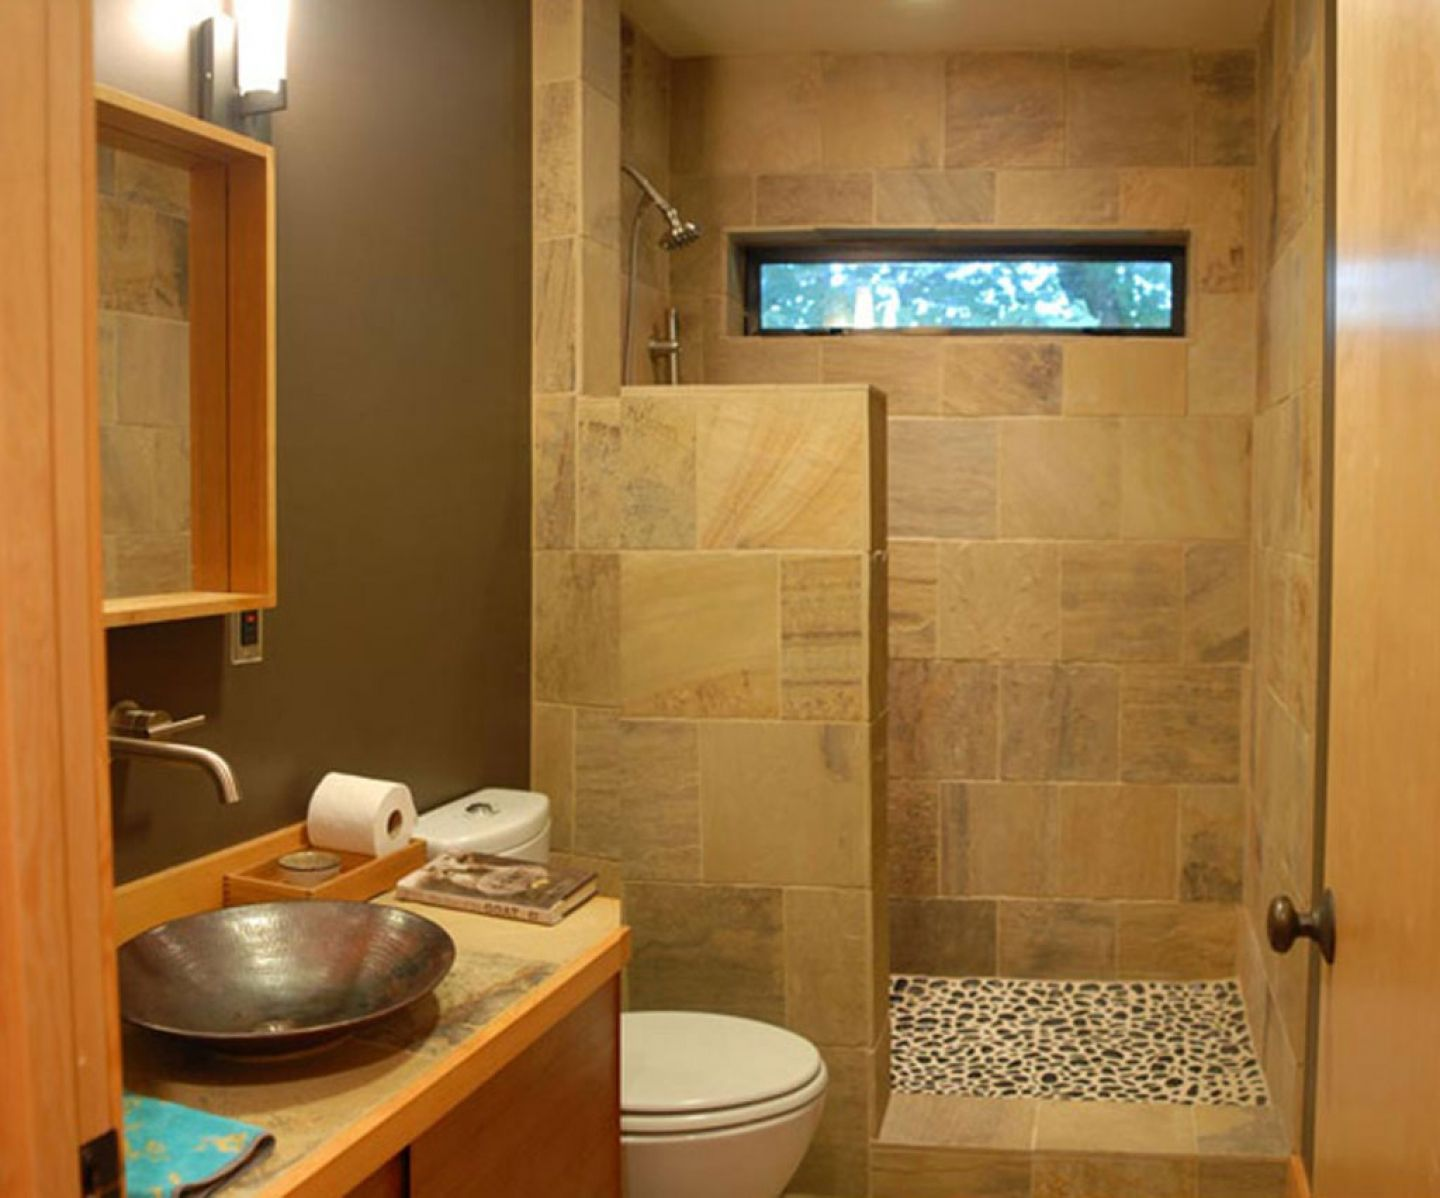 30 Best Small Bathroom Ideas | Bathroom colors | Pinterest ...